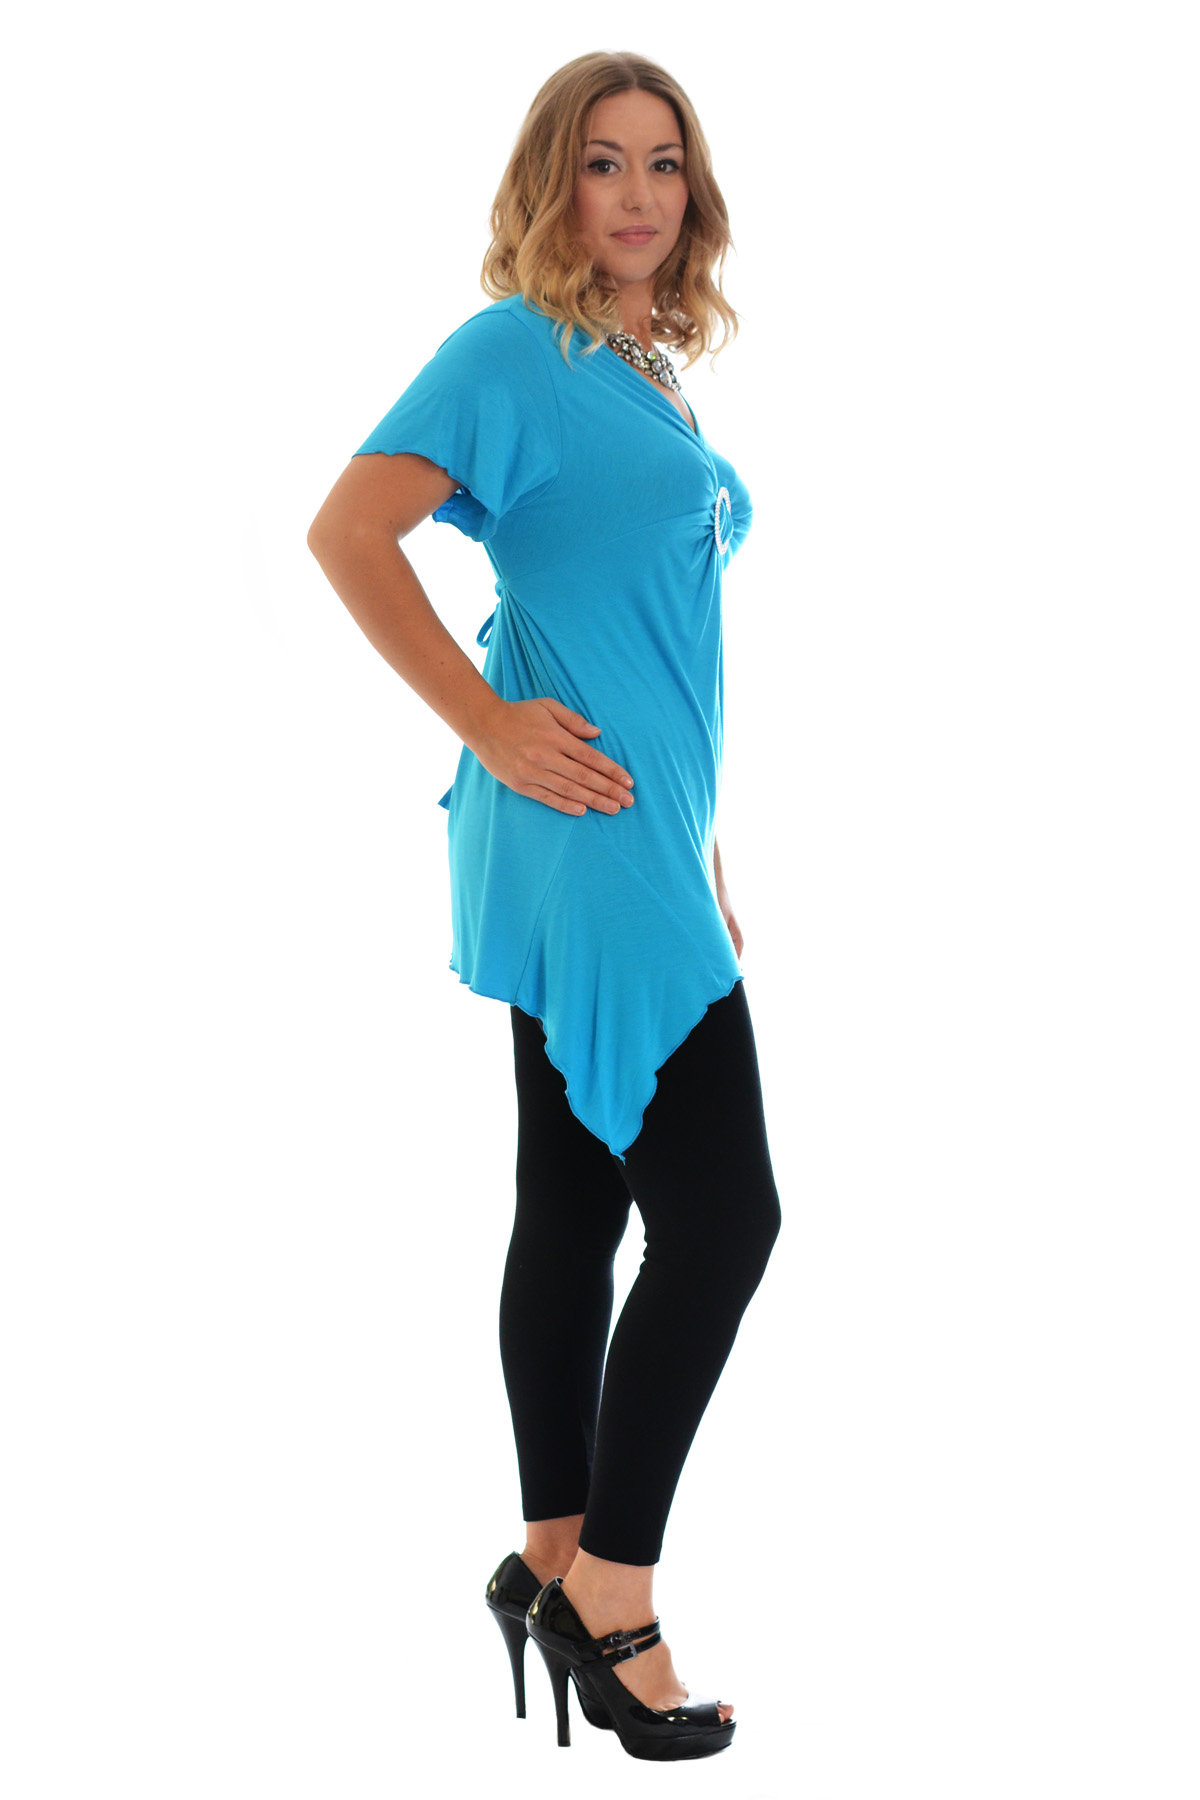 New-Womens-Plus-Size-Top-Ladies-T-Shirt-Buckle-Stud-A-Line-Asymmetric-Nouvelle thumbnail 35